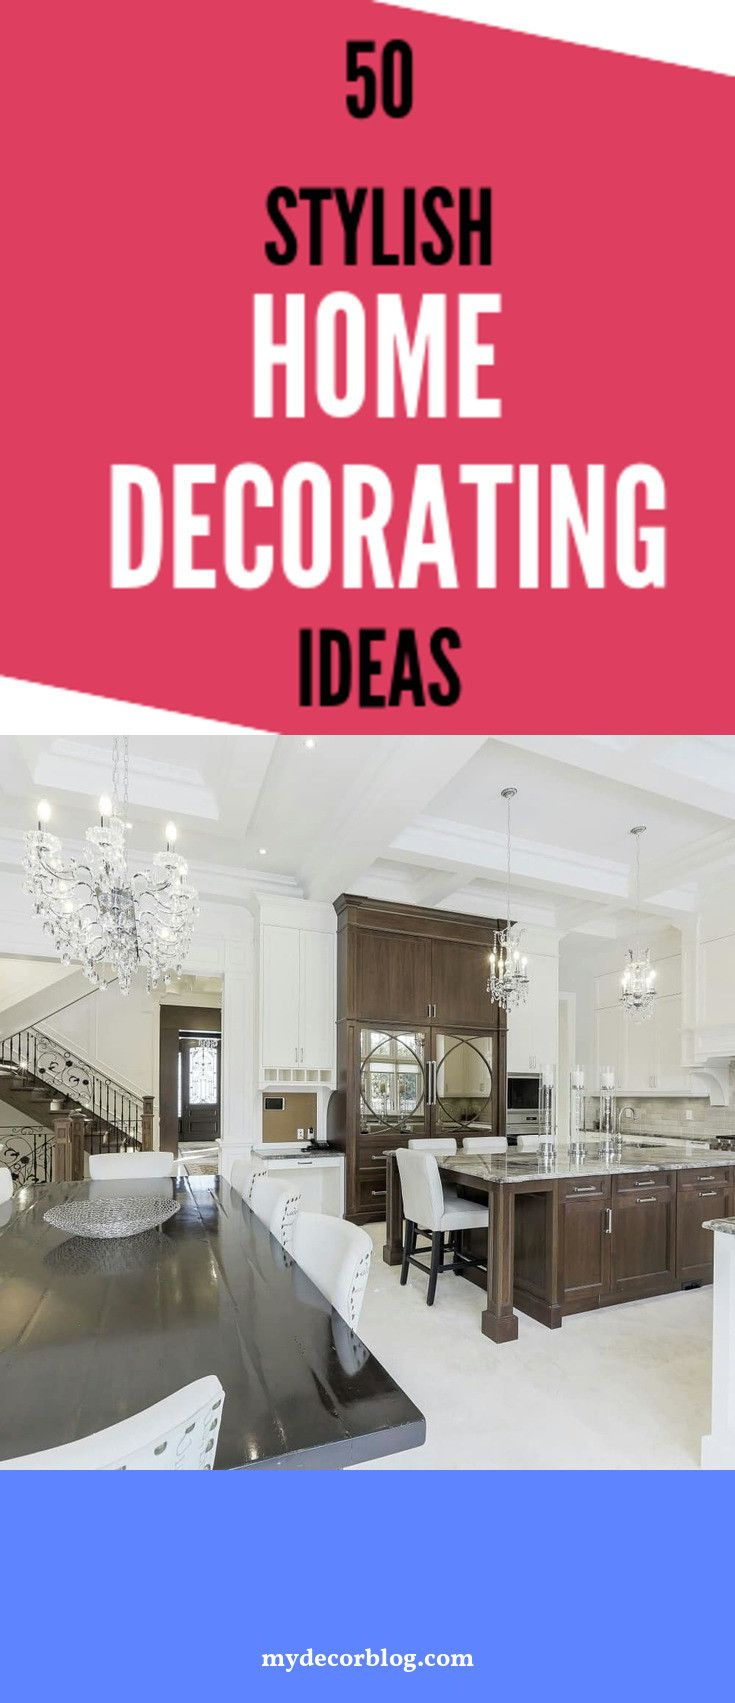 Geek Chic Home Decoration Decoration The Nest Blog Home Decoration D Cor Home Decor Chic Home Home